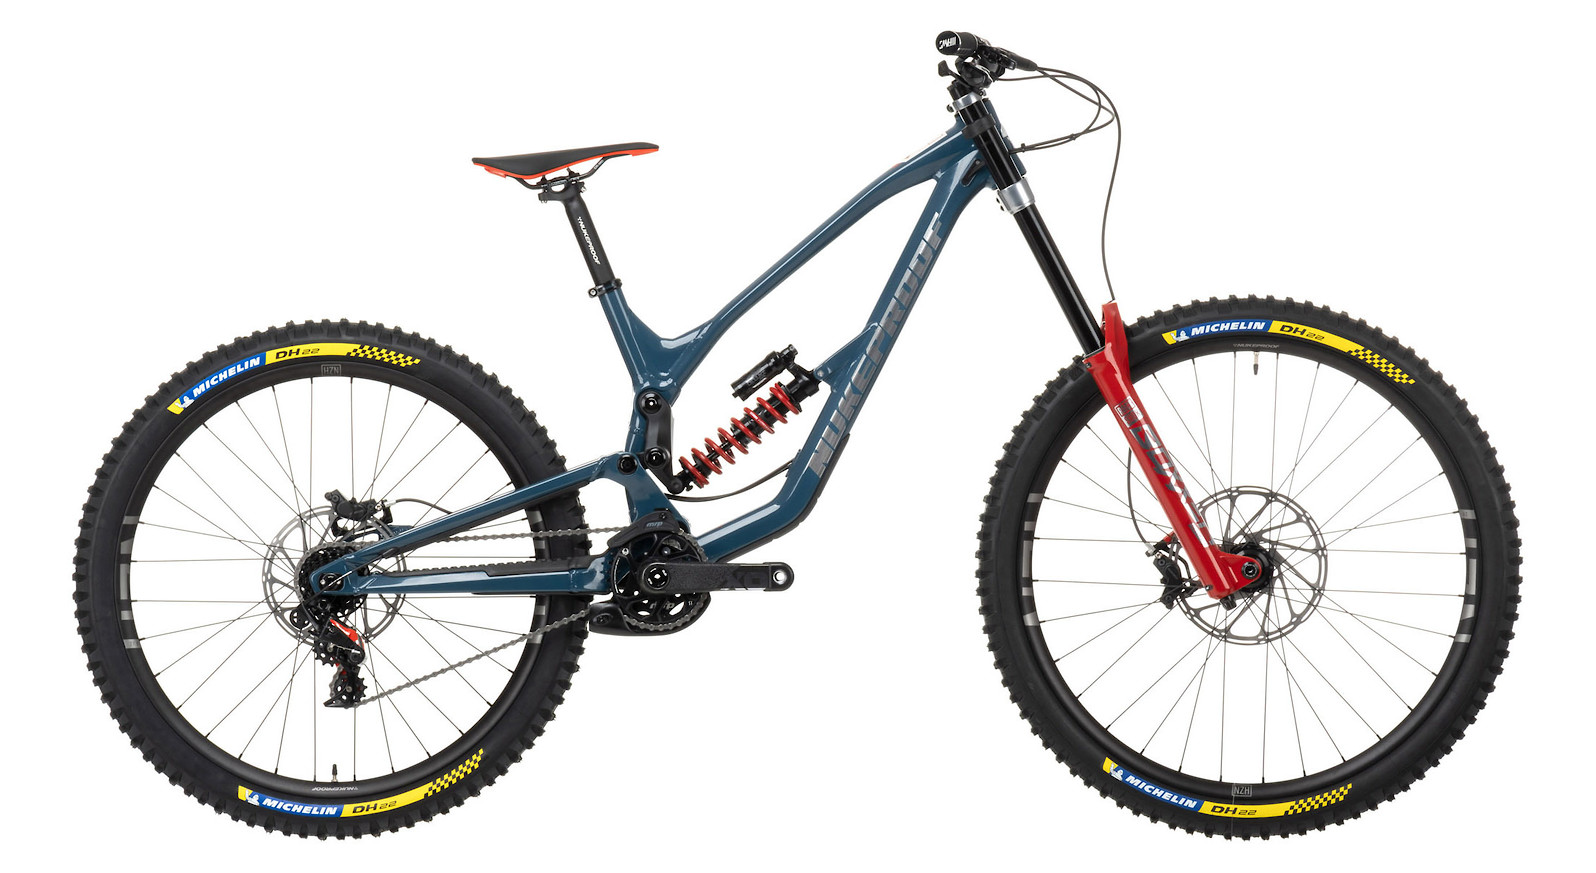 2021 Nukeproof Dissent 297 RS